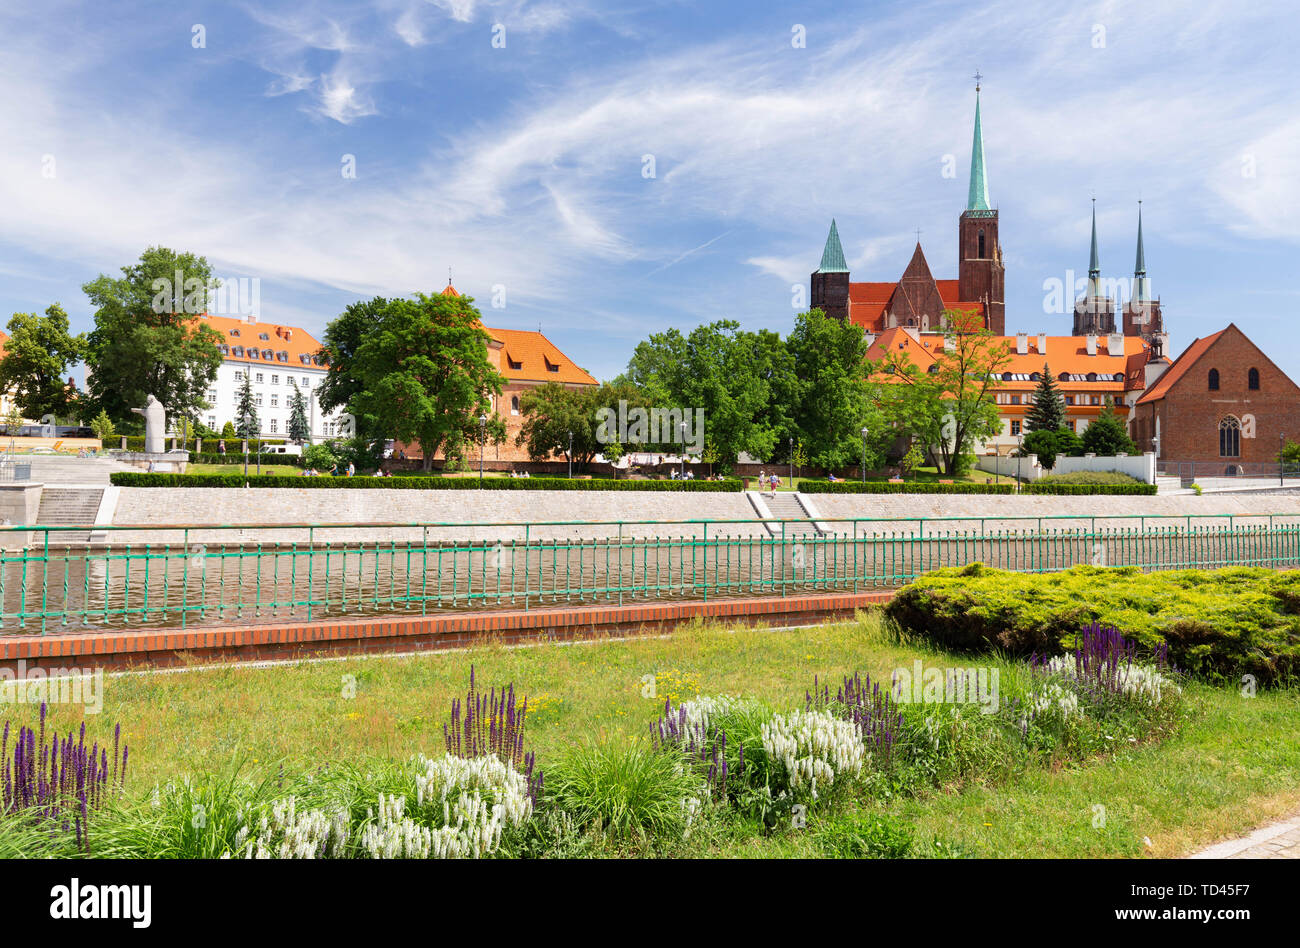 Wroclaw in Poland. Old quater with gothic architecture Stock Photo